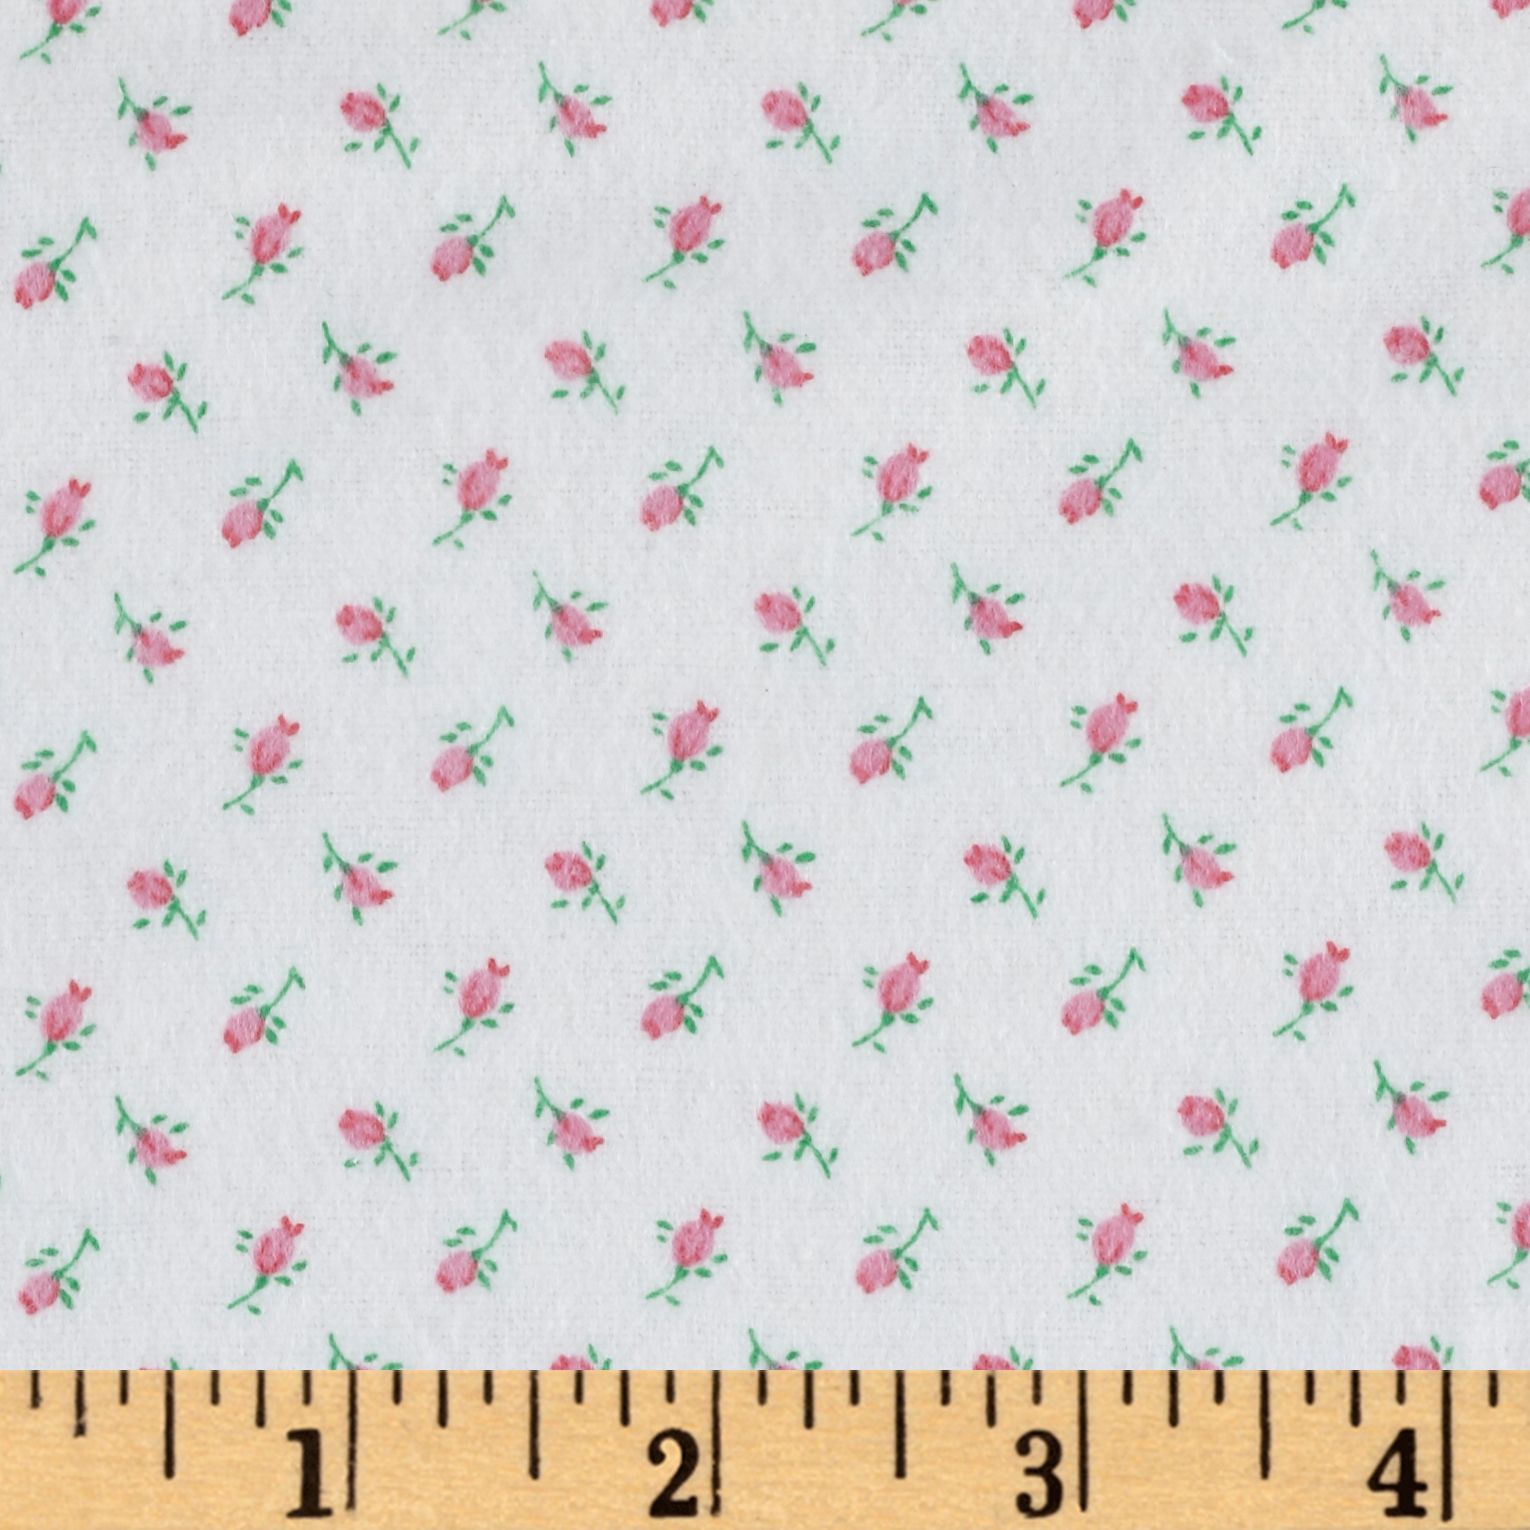 Comfy Flannel Rosebud Pink Fabric by A. E. Nathan in USA